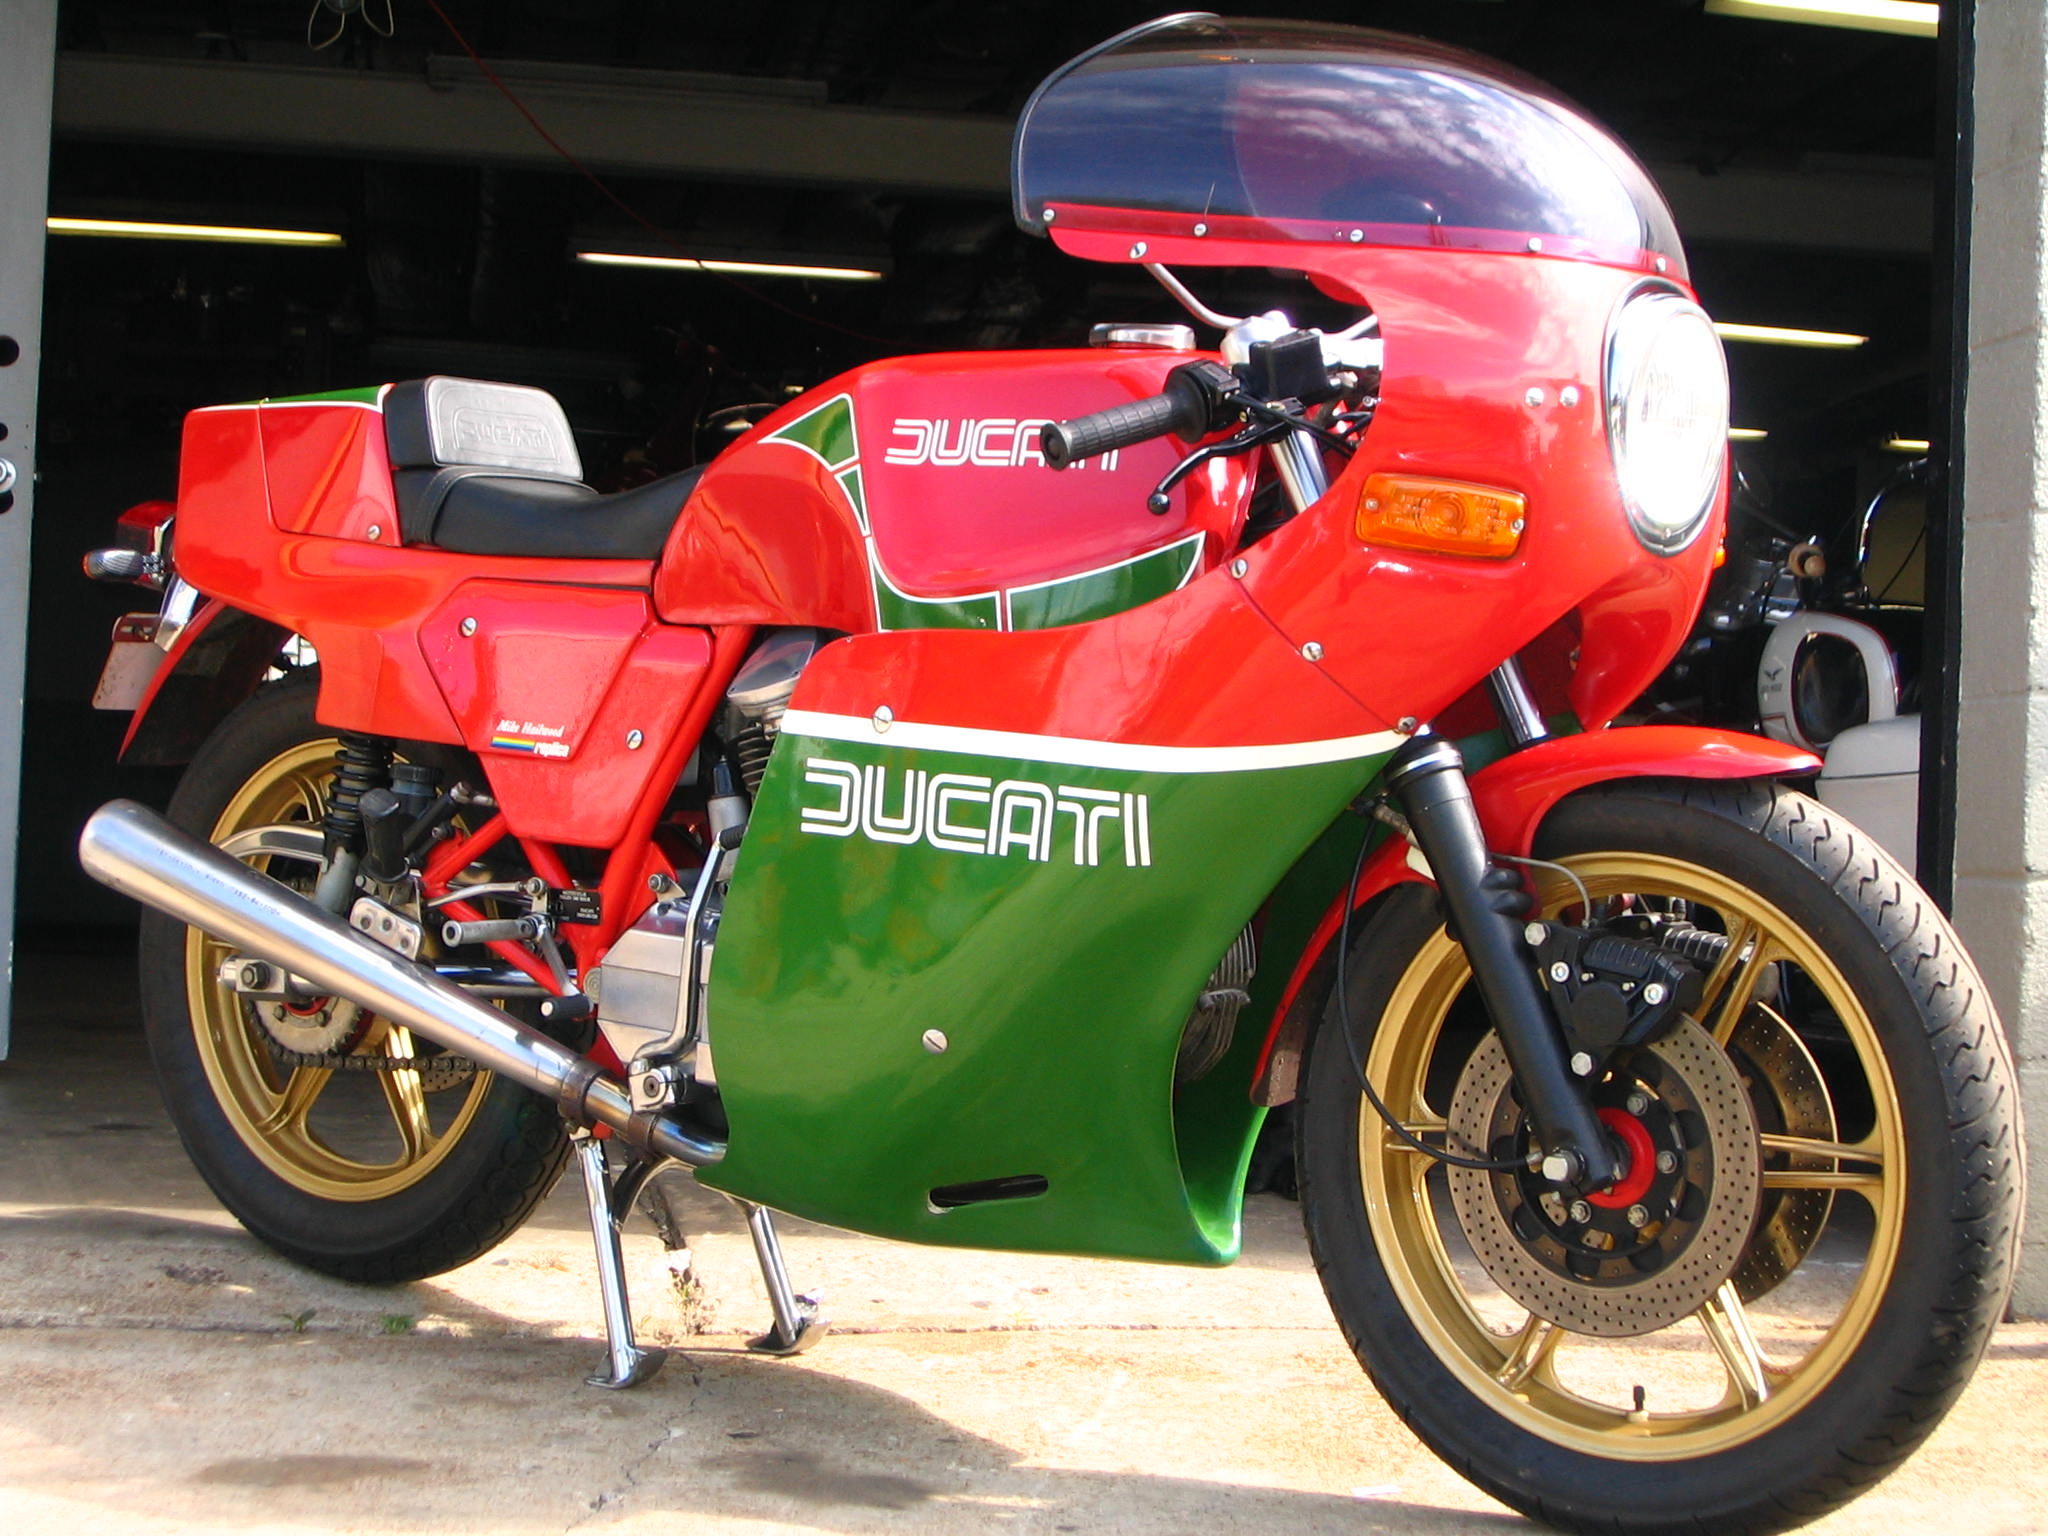 Ducati 900 SS Hailwood-Replica 1985 images #78740